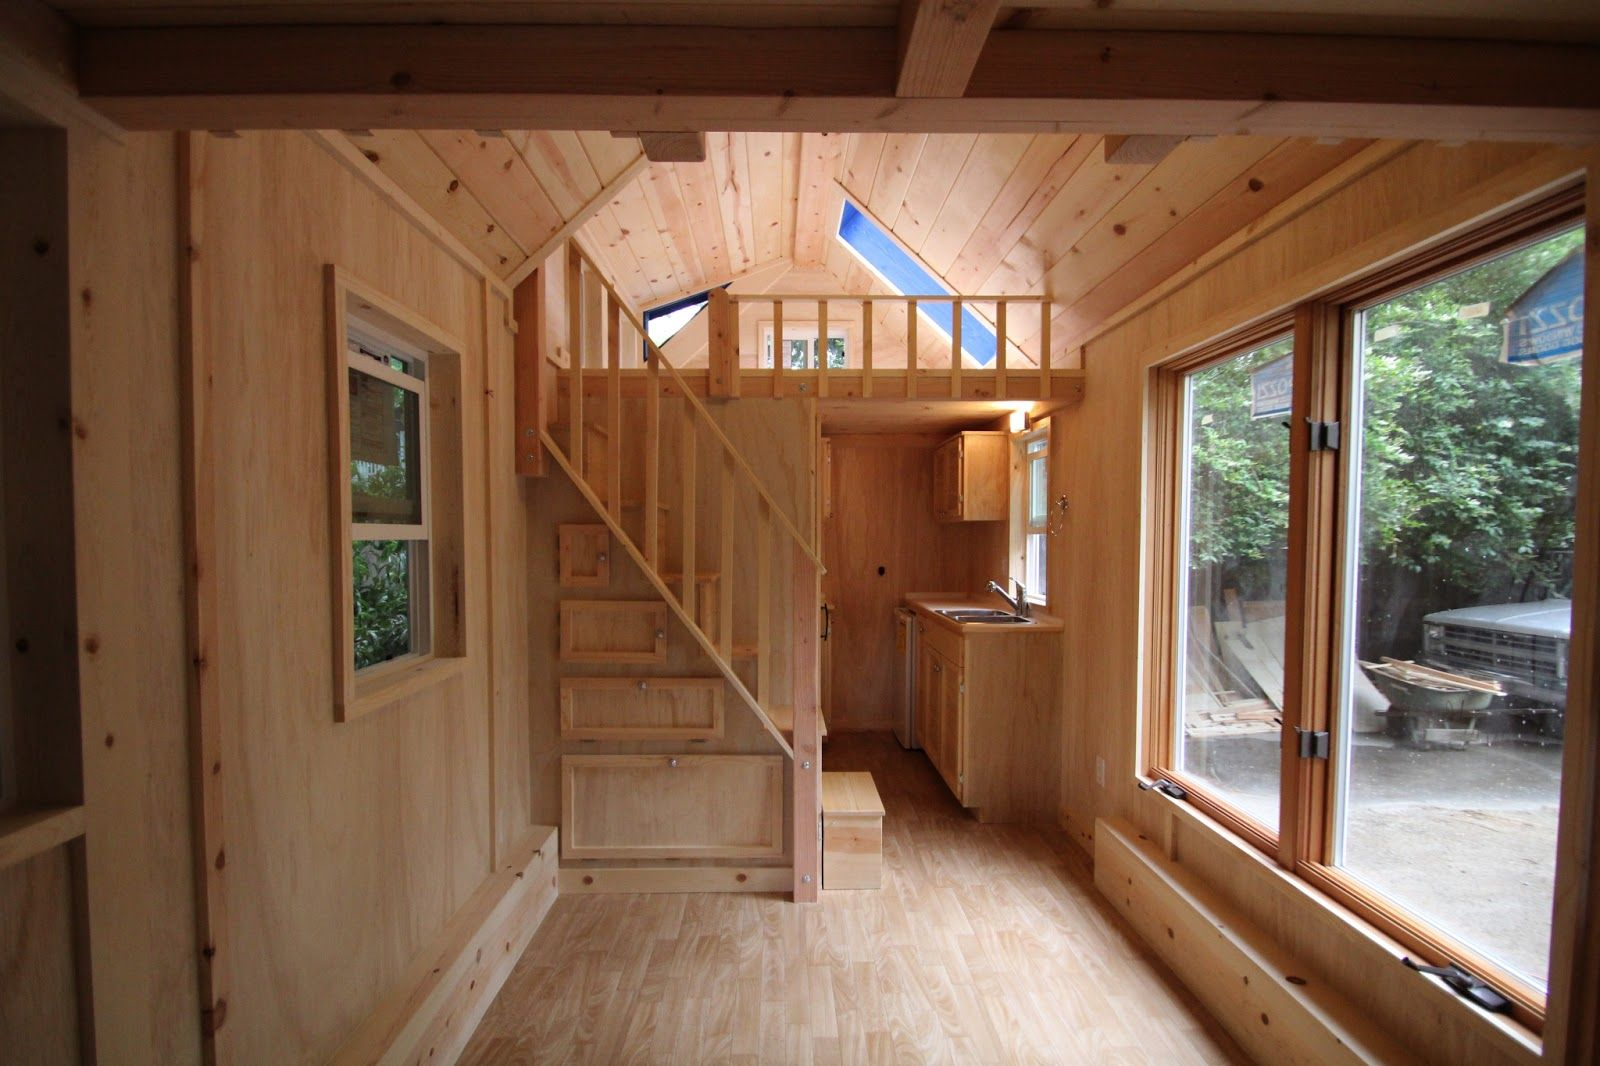 Fantastic 17 Best Images About Tiny Houses I Want On Pinterest Tiny House Largest Home Design Picture Inspirations Pitcheantrous